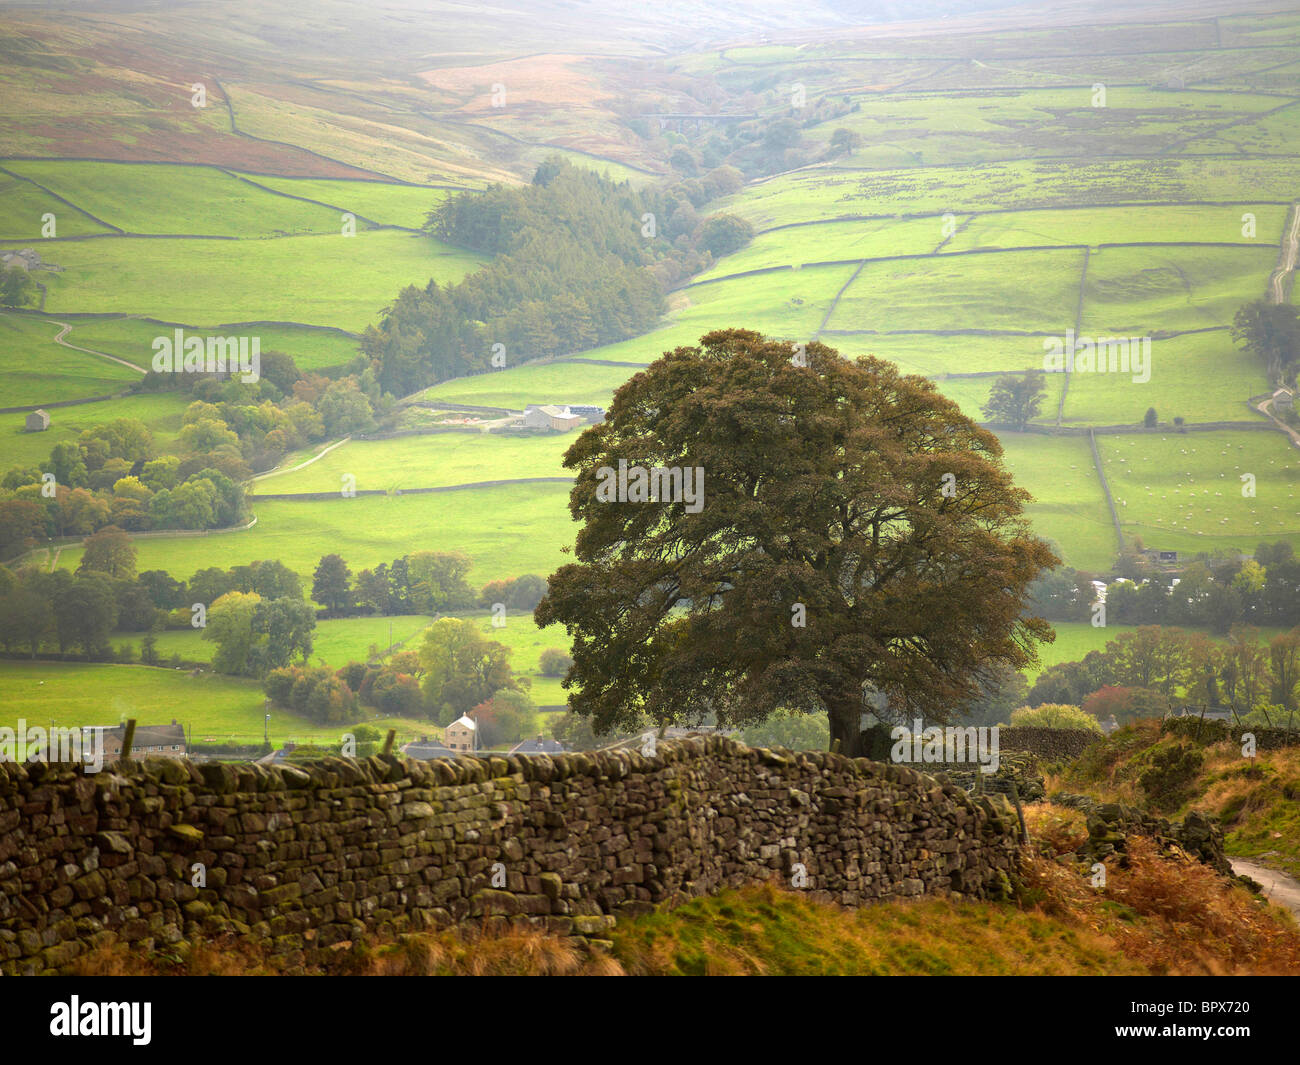 Nidderdale above Lofthouse, Yorkshire Dales, Northern England - Stock Image